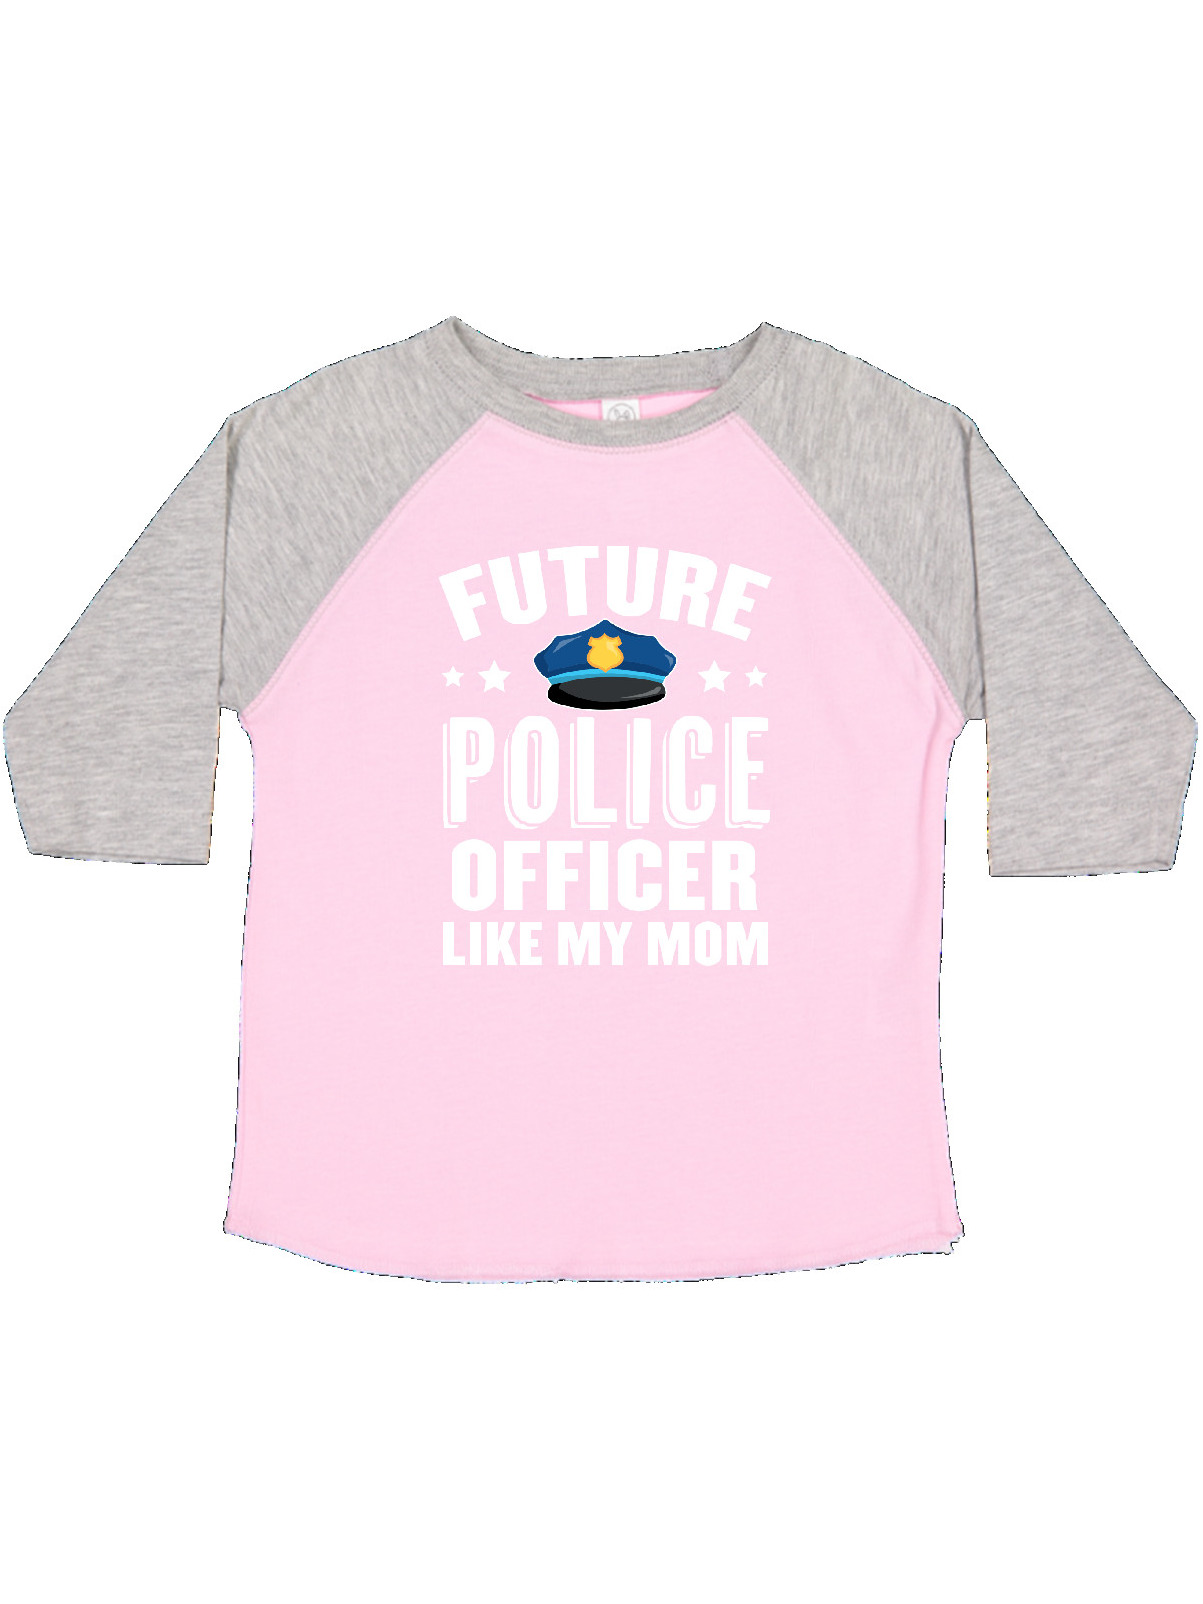 Future Police Officer Like My Mom Toddler T Shirt